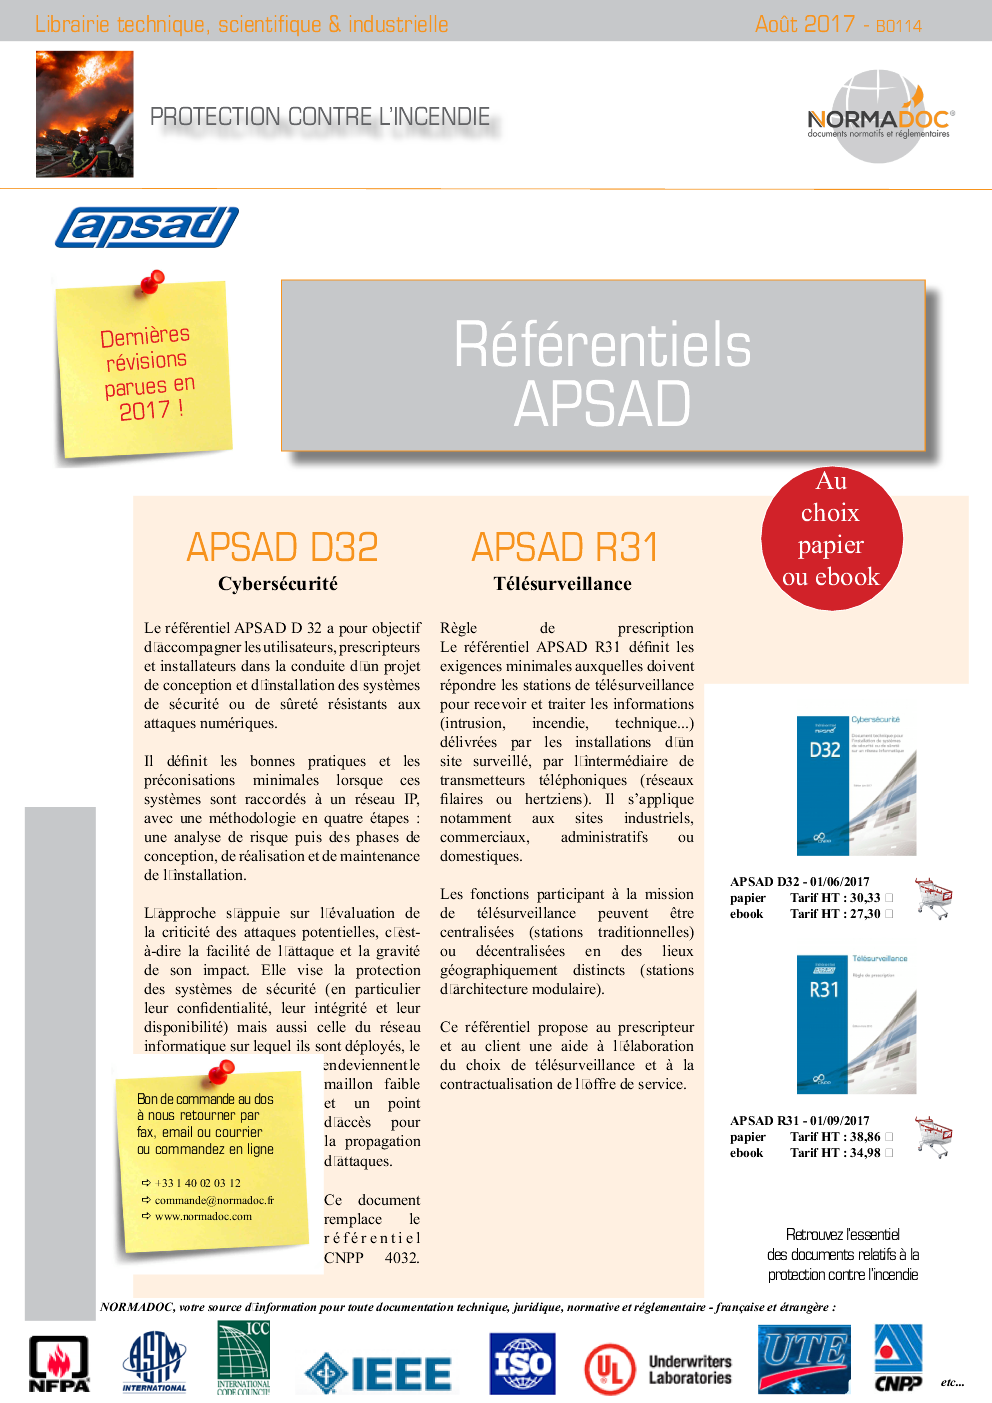 APSAD - Security - Detection - Fire Extinguishers